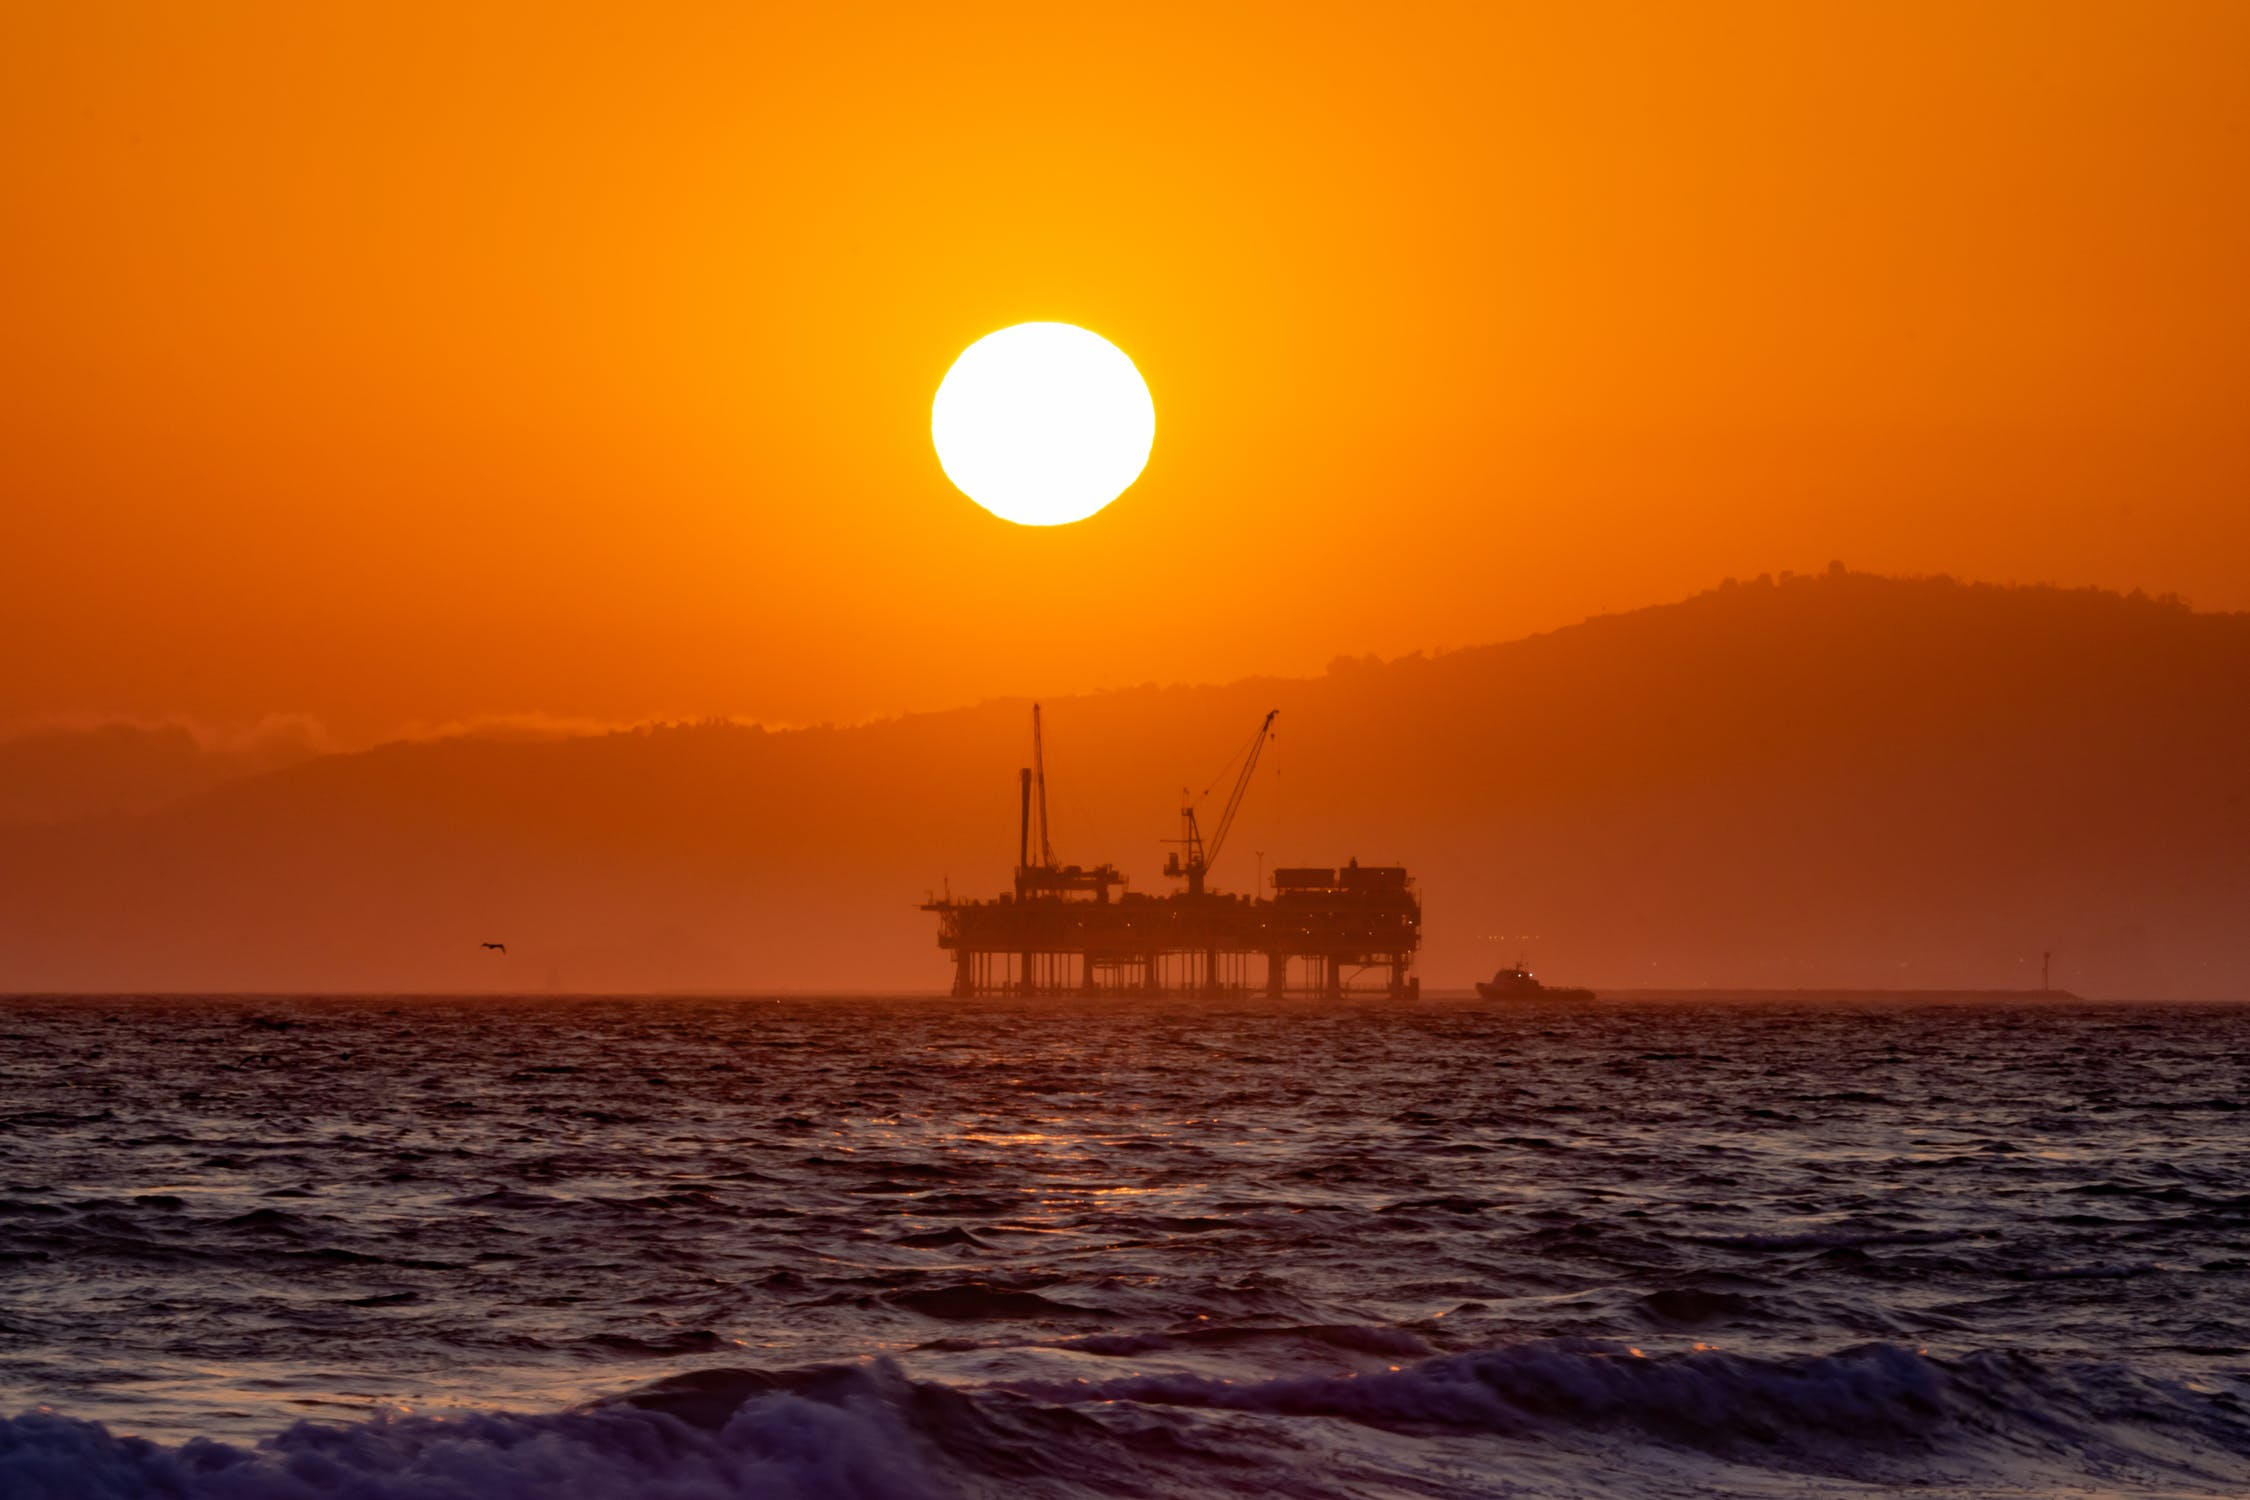 UN Finds Dangerous Gap Between Fossil Fuel Production and Climate Goals